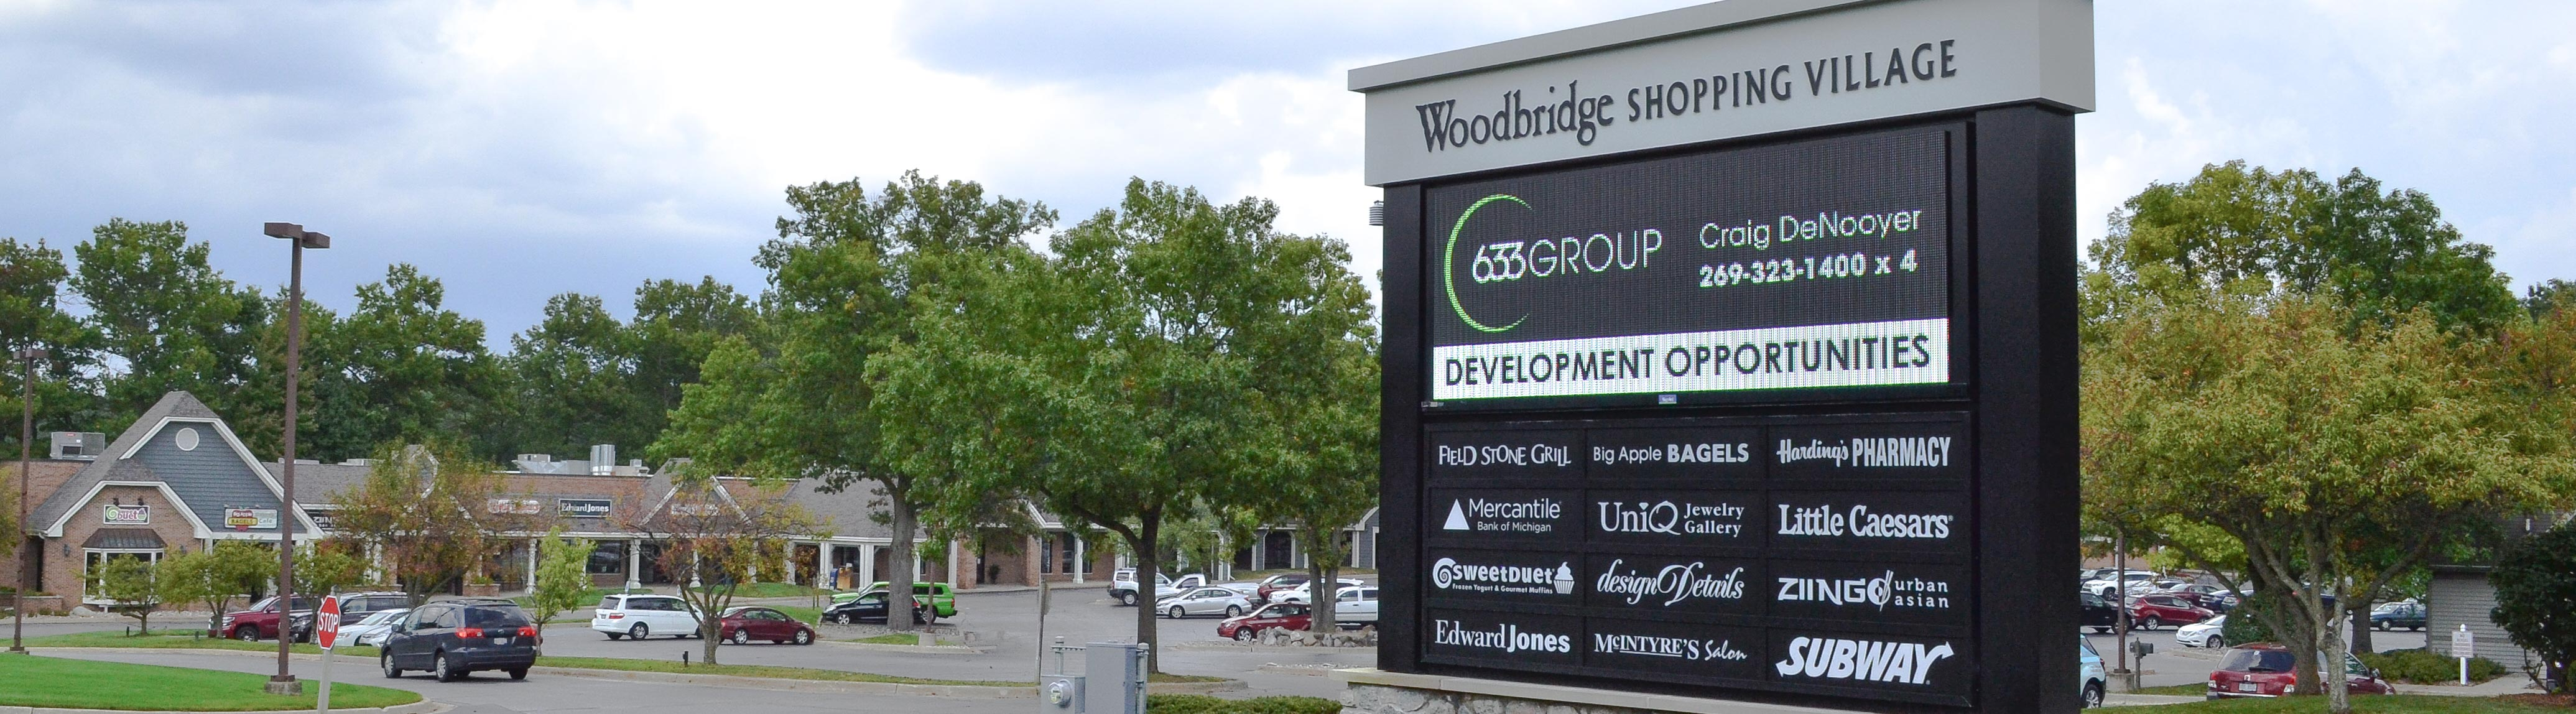 Woodbridge Shopping Village | 633 Group